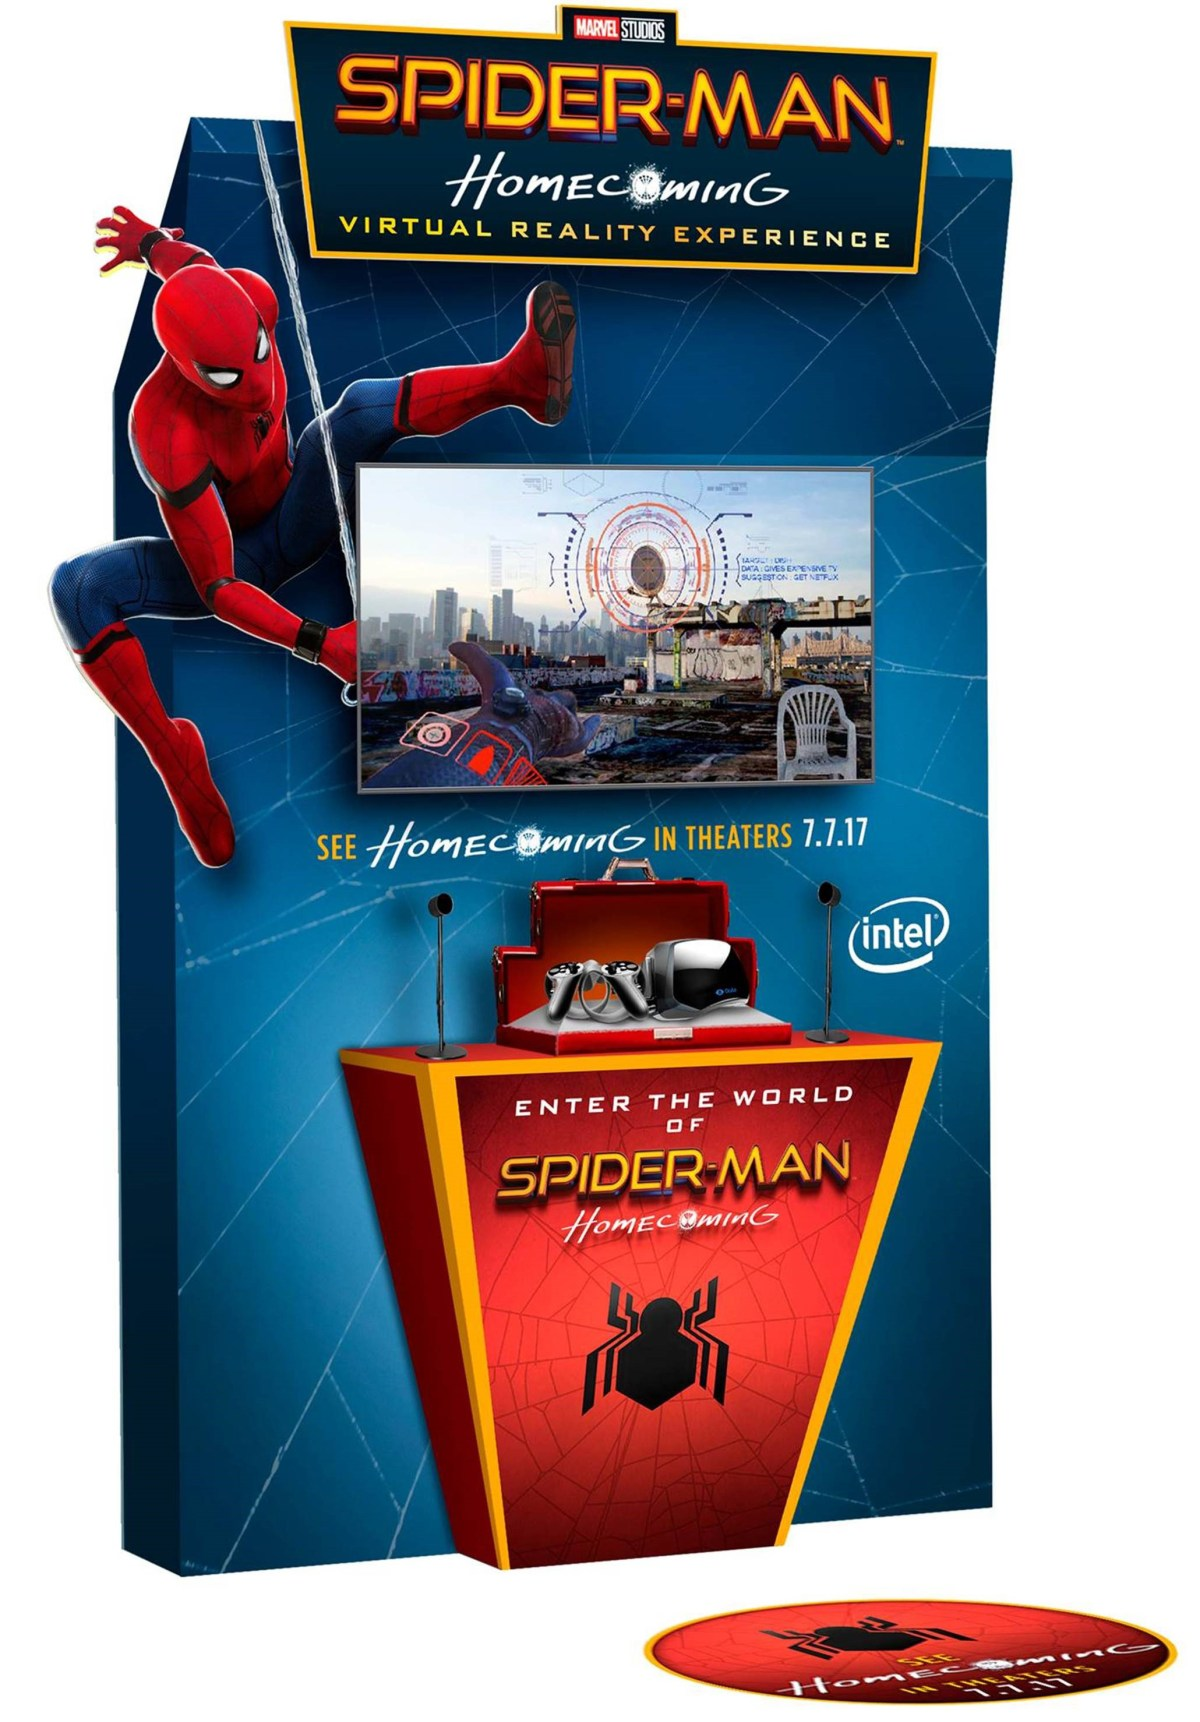 Intel Teams with Sony Pictures Virtual Reality to Create 'Spider-Man: Homecoming' Virtual Reality Experience